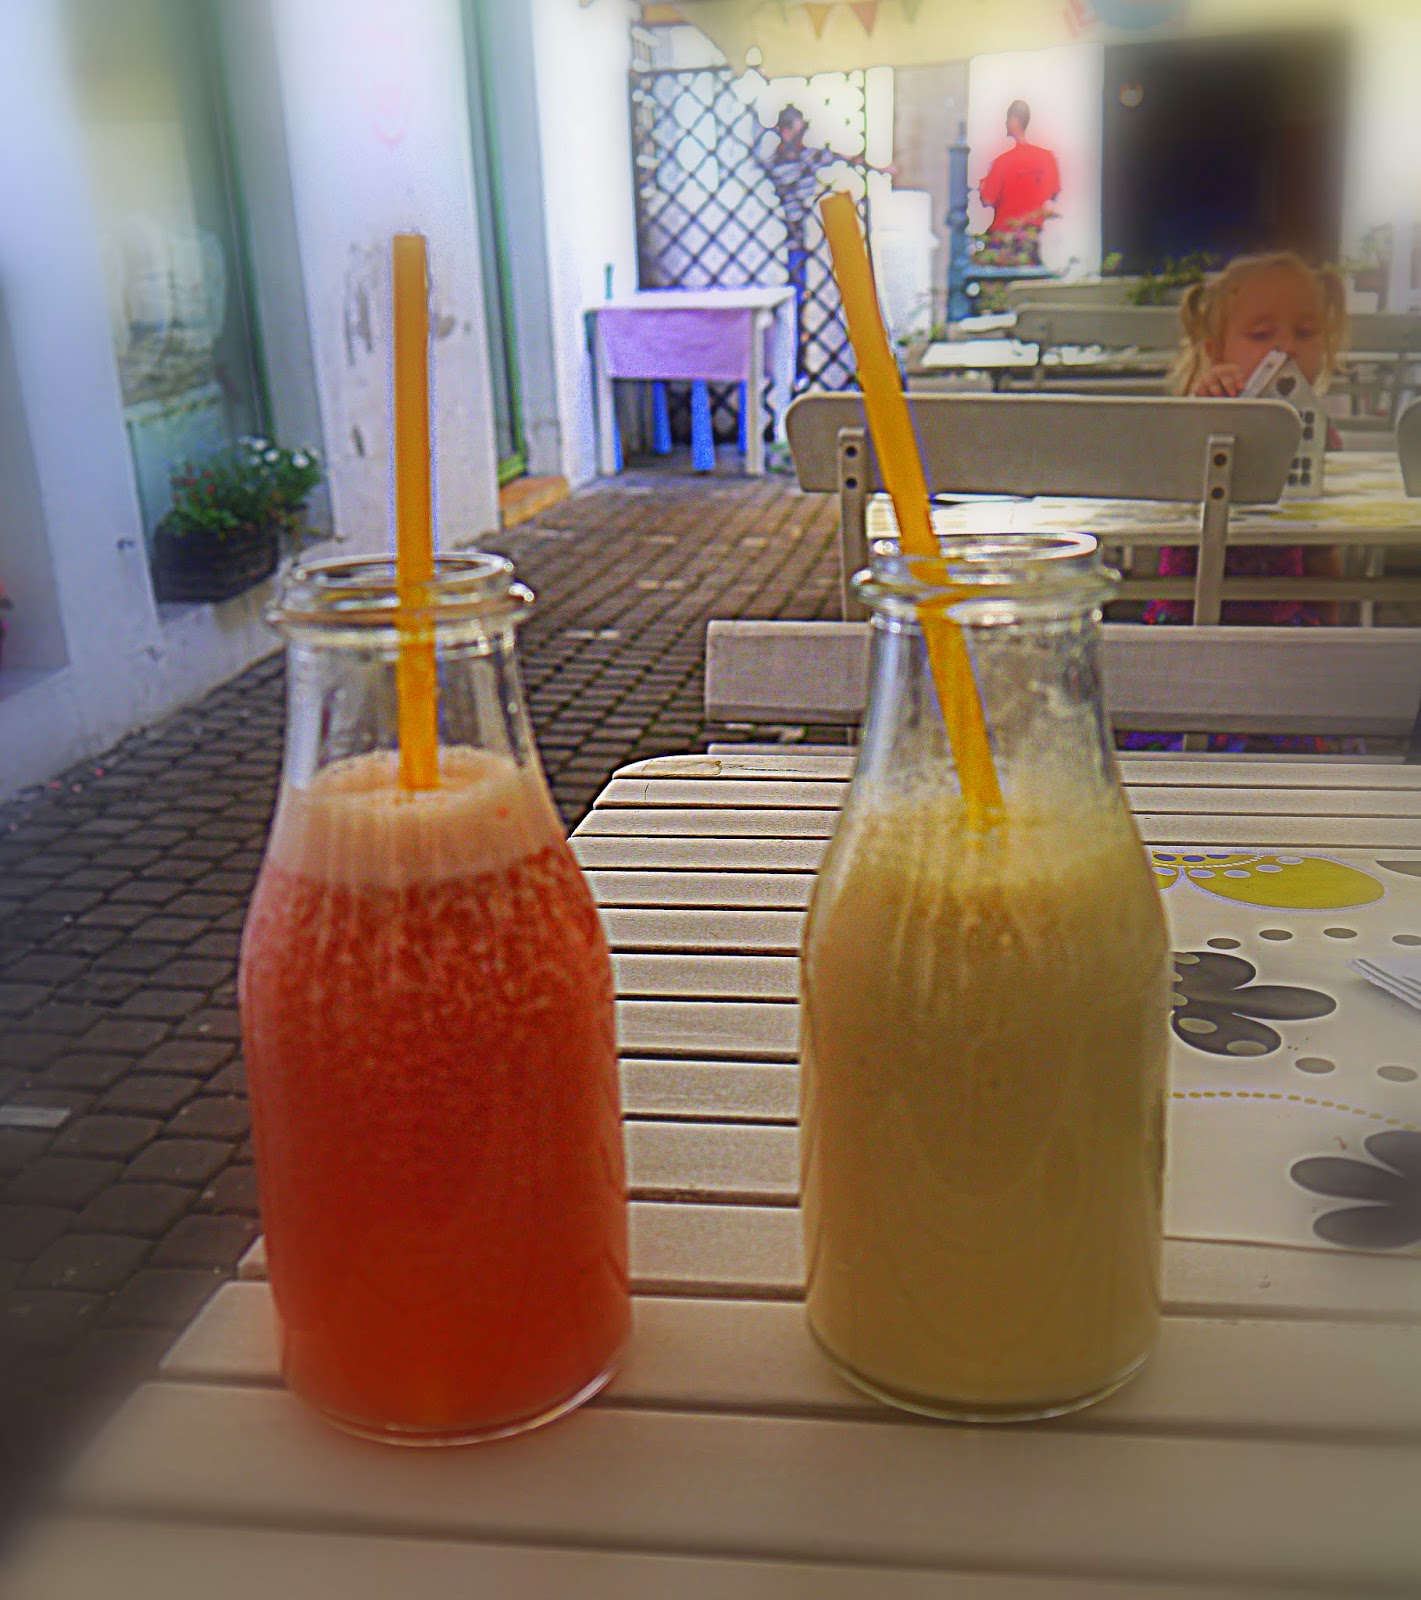 Mamy Cafe, Milkshake, Smoothie